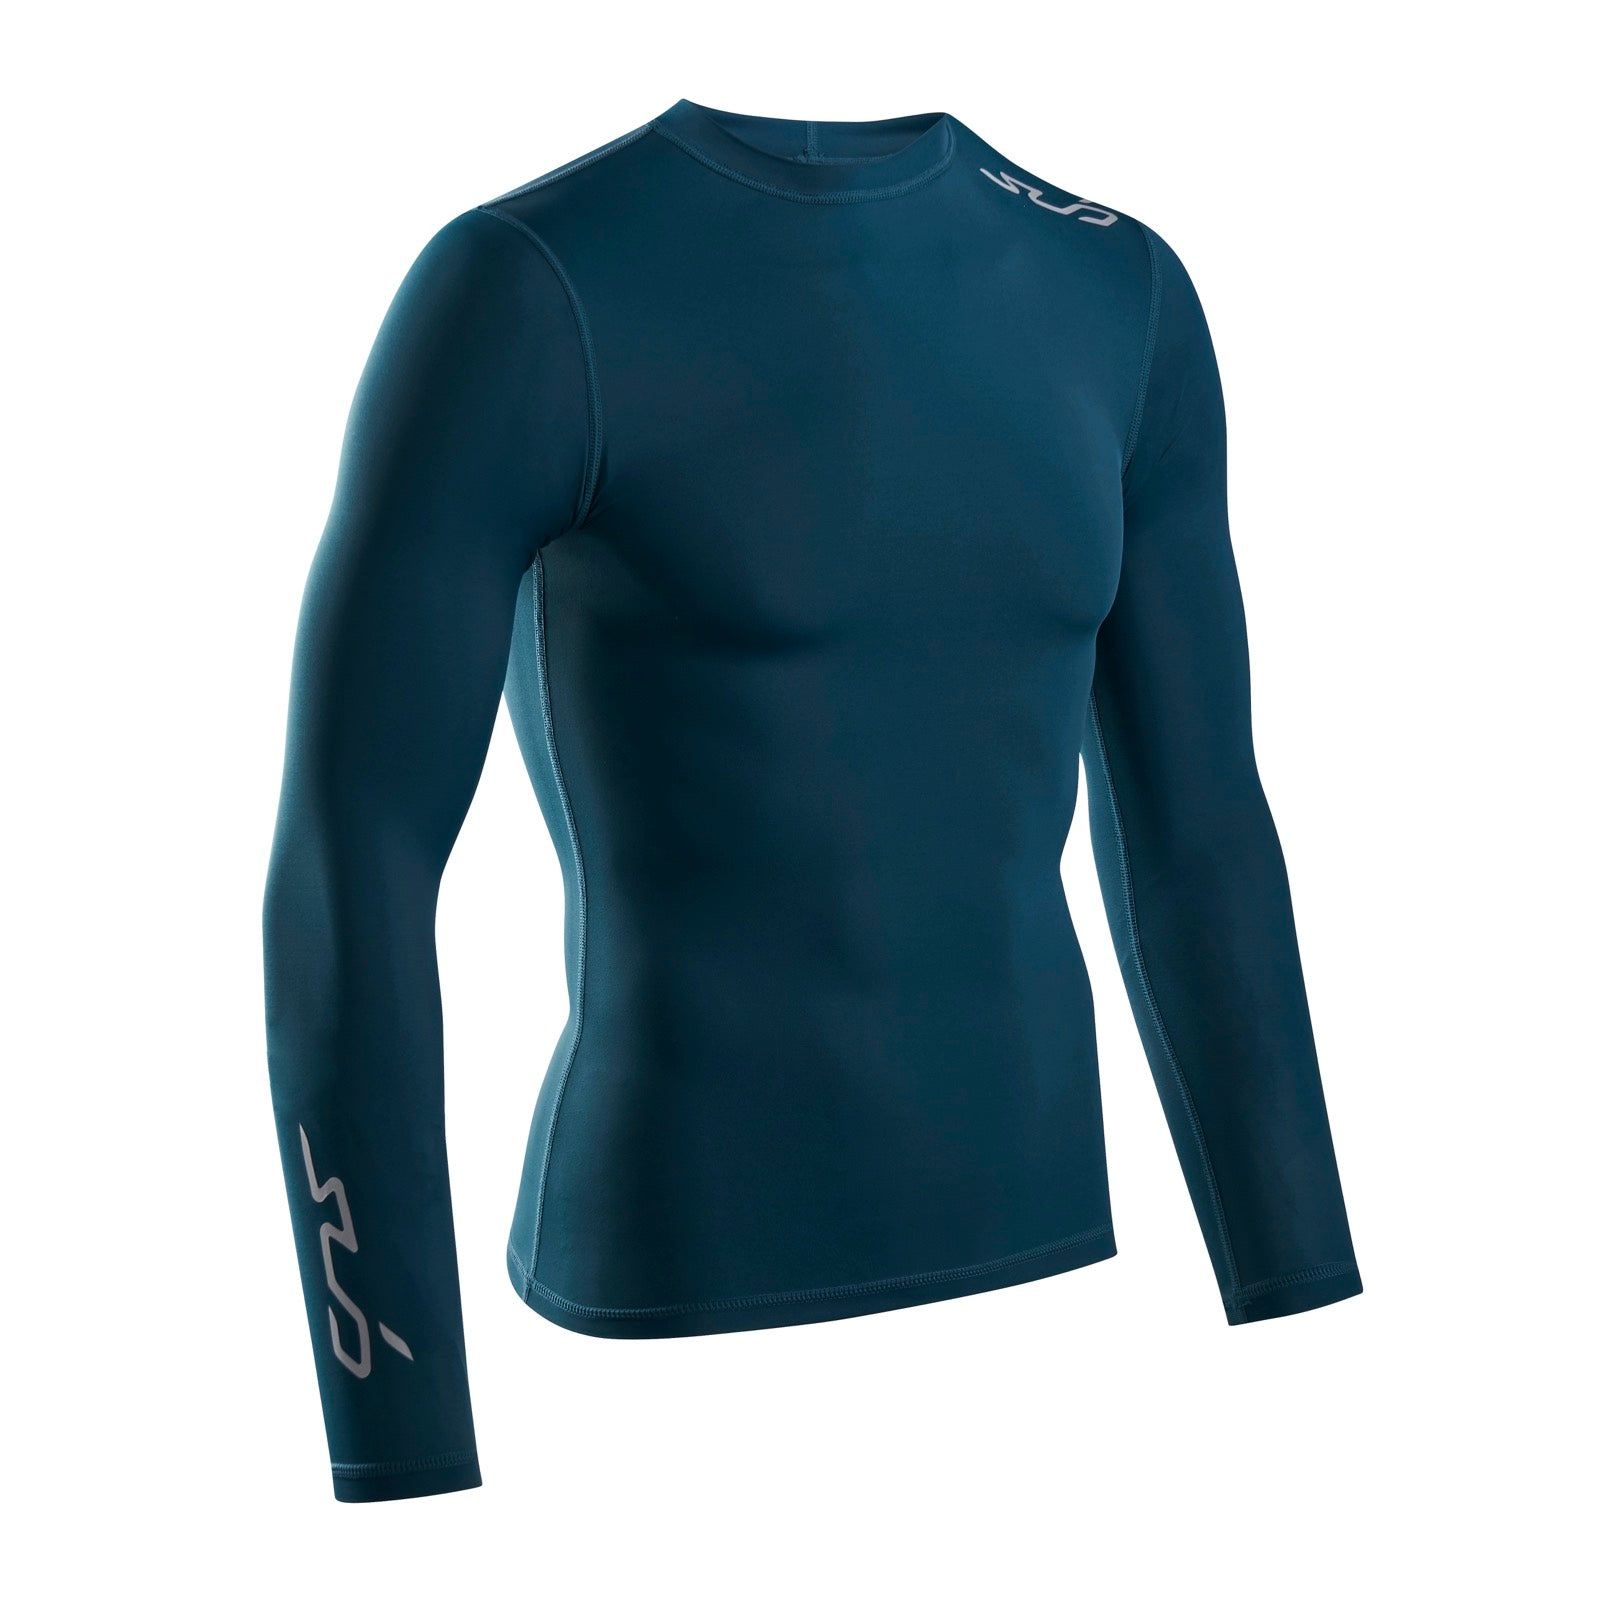 Sub Sports Dual 2.0 Long Sleeve Mens Compression Top Black Sports Base Layer